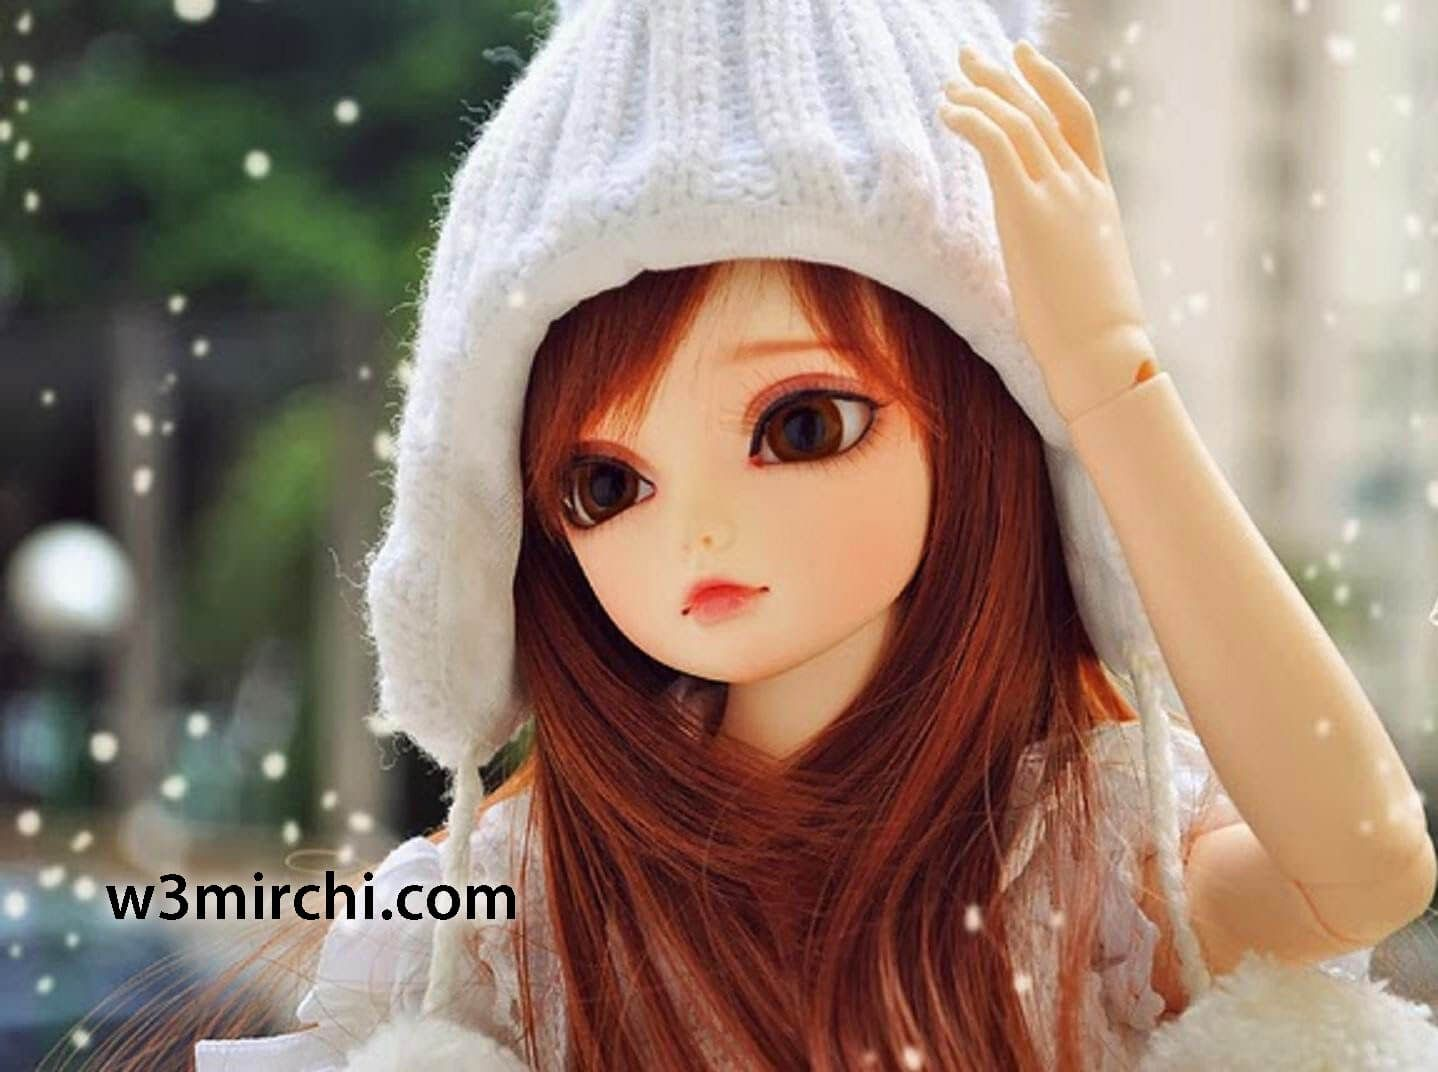 Barbie Doll Image For Dp And Whats Beautiful Cute Images Barbies Pics Barbie Images Doll Images Hd